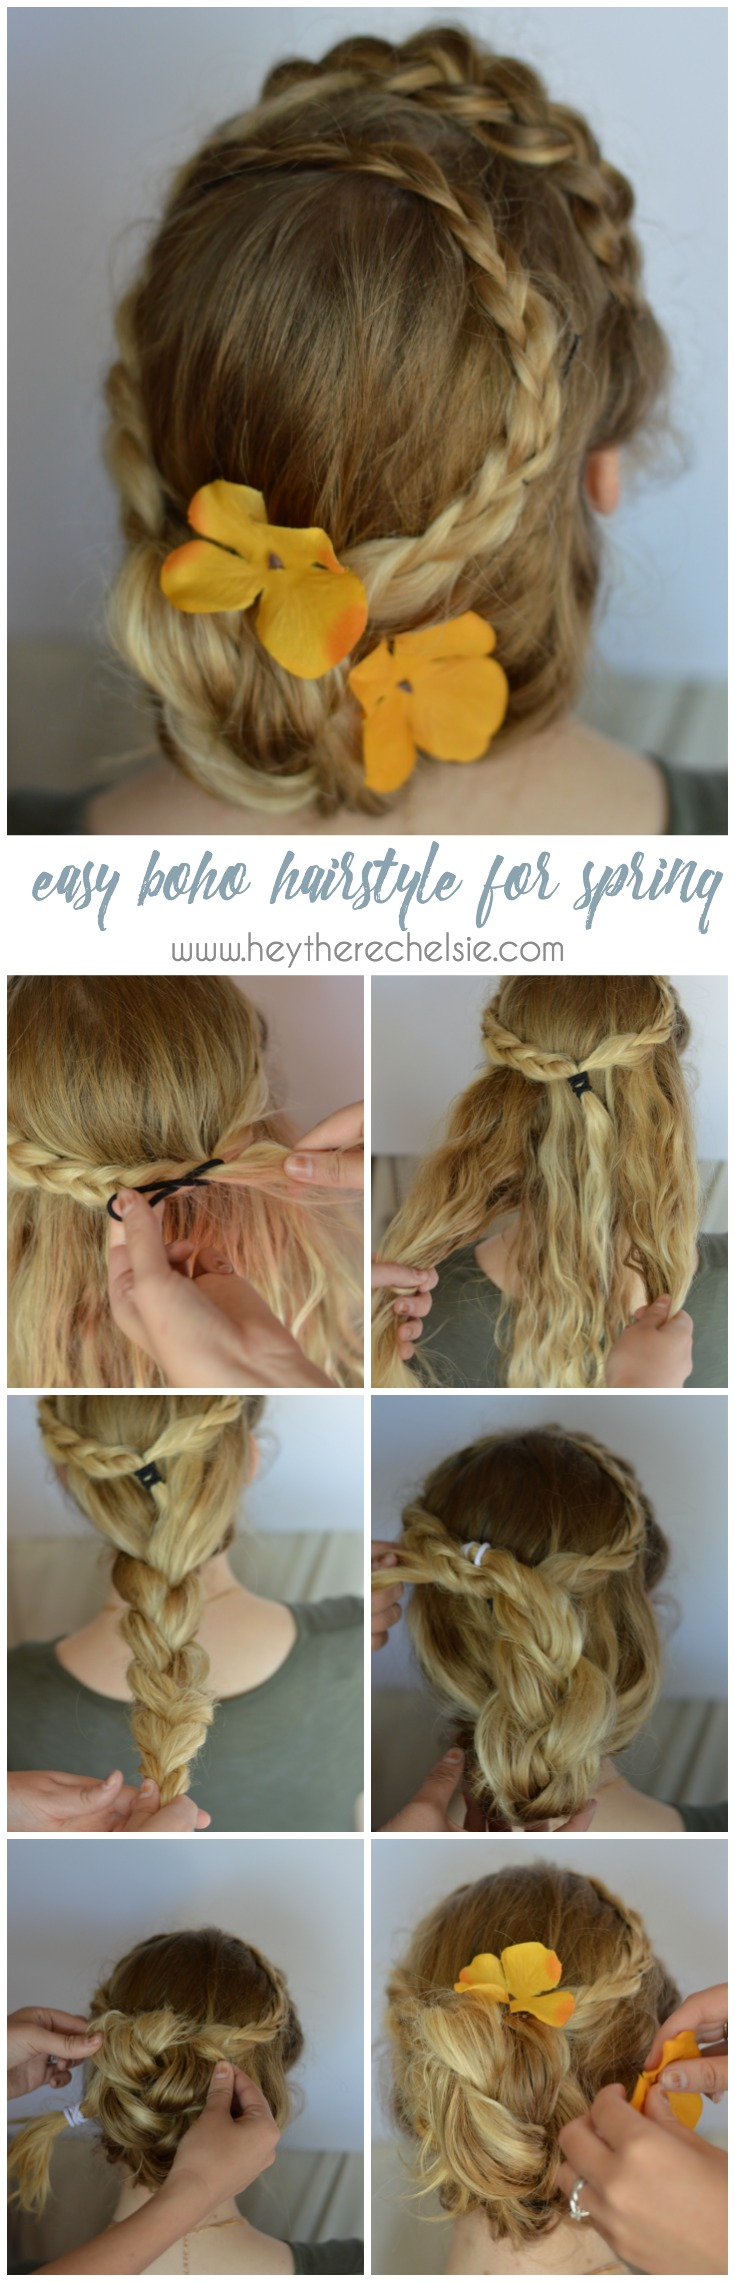 Start off with the easy braided boho crown and add one more braid to create a beautiful and romantic updo! Super easy to acheive [ad] #GoodyStyle // www.heytherechelsie.com